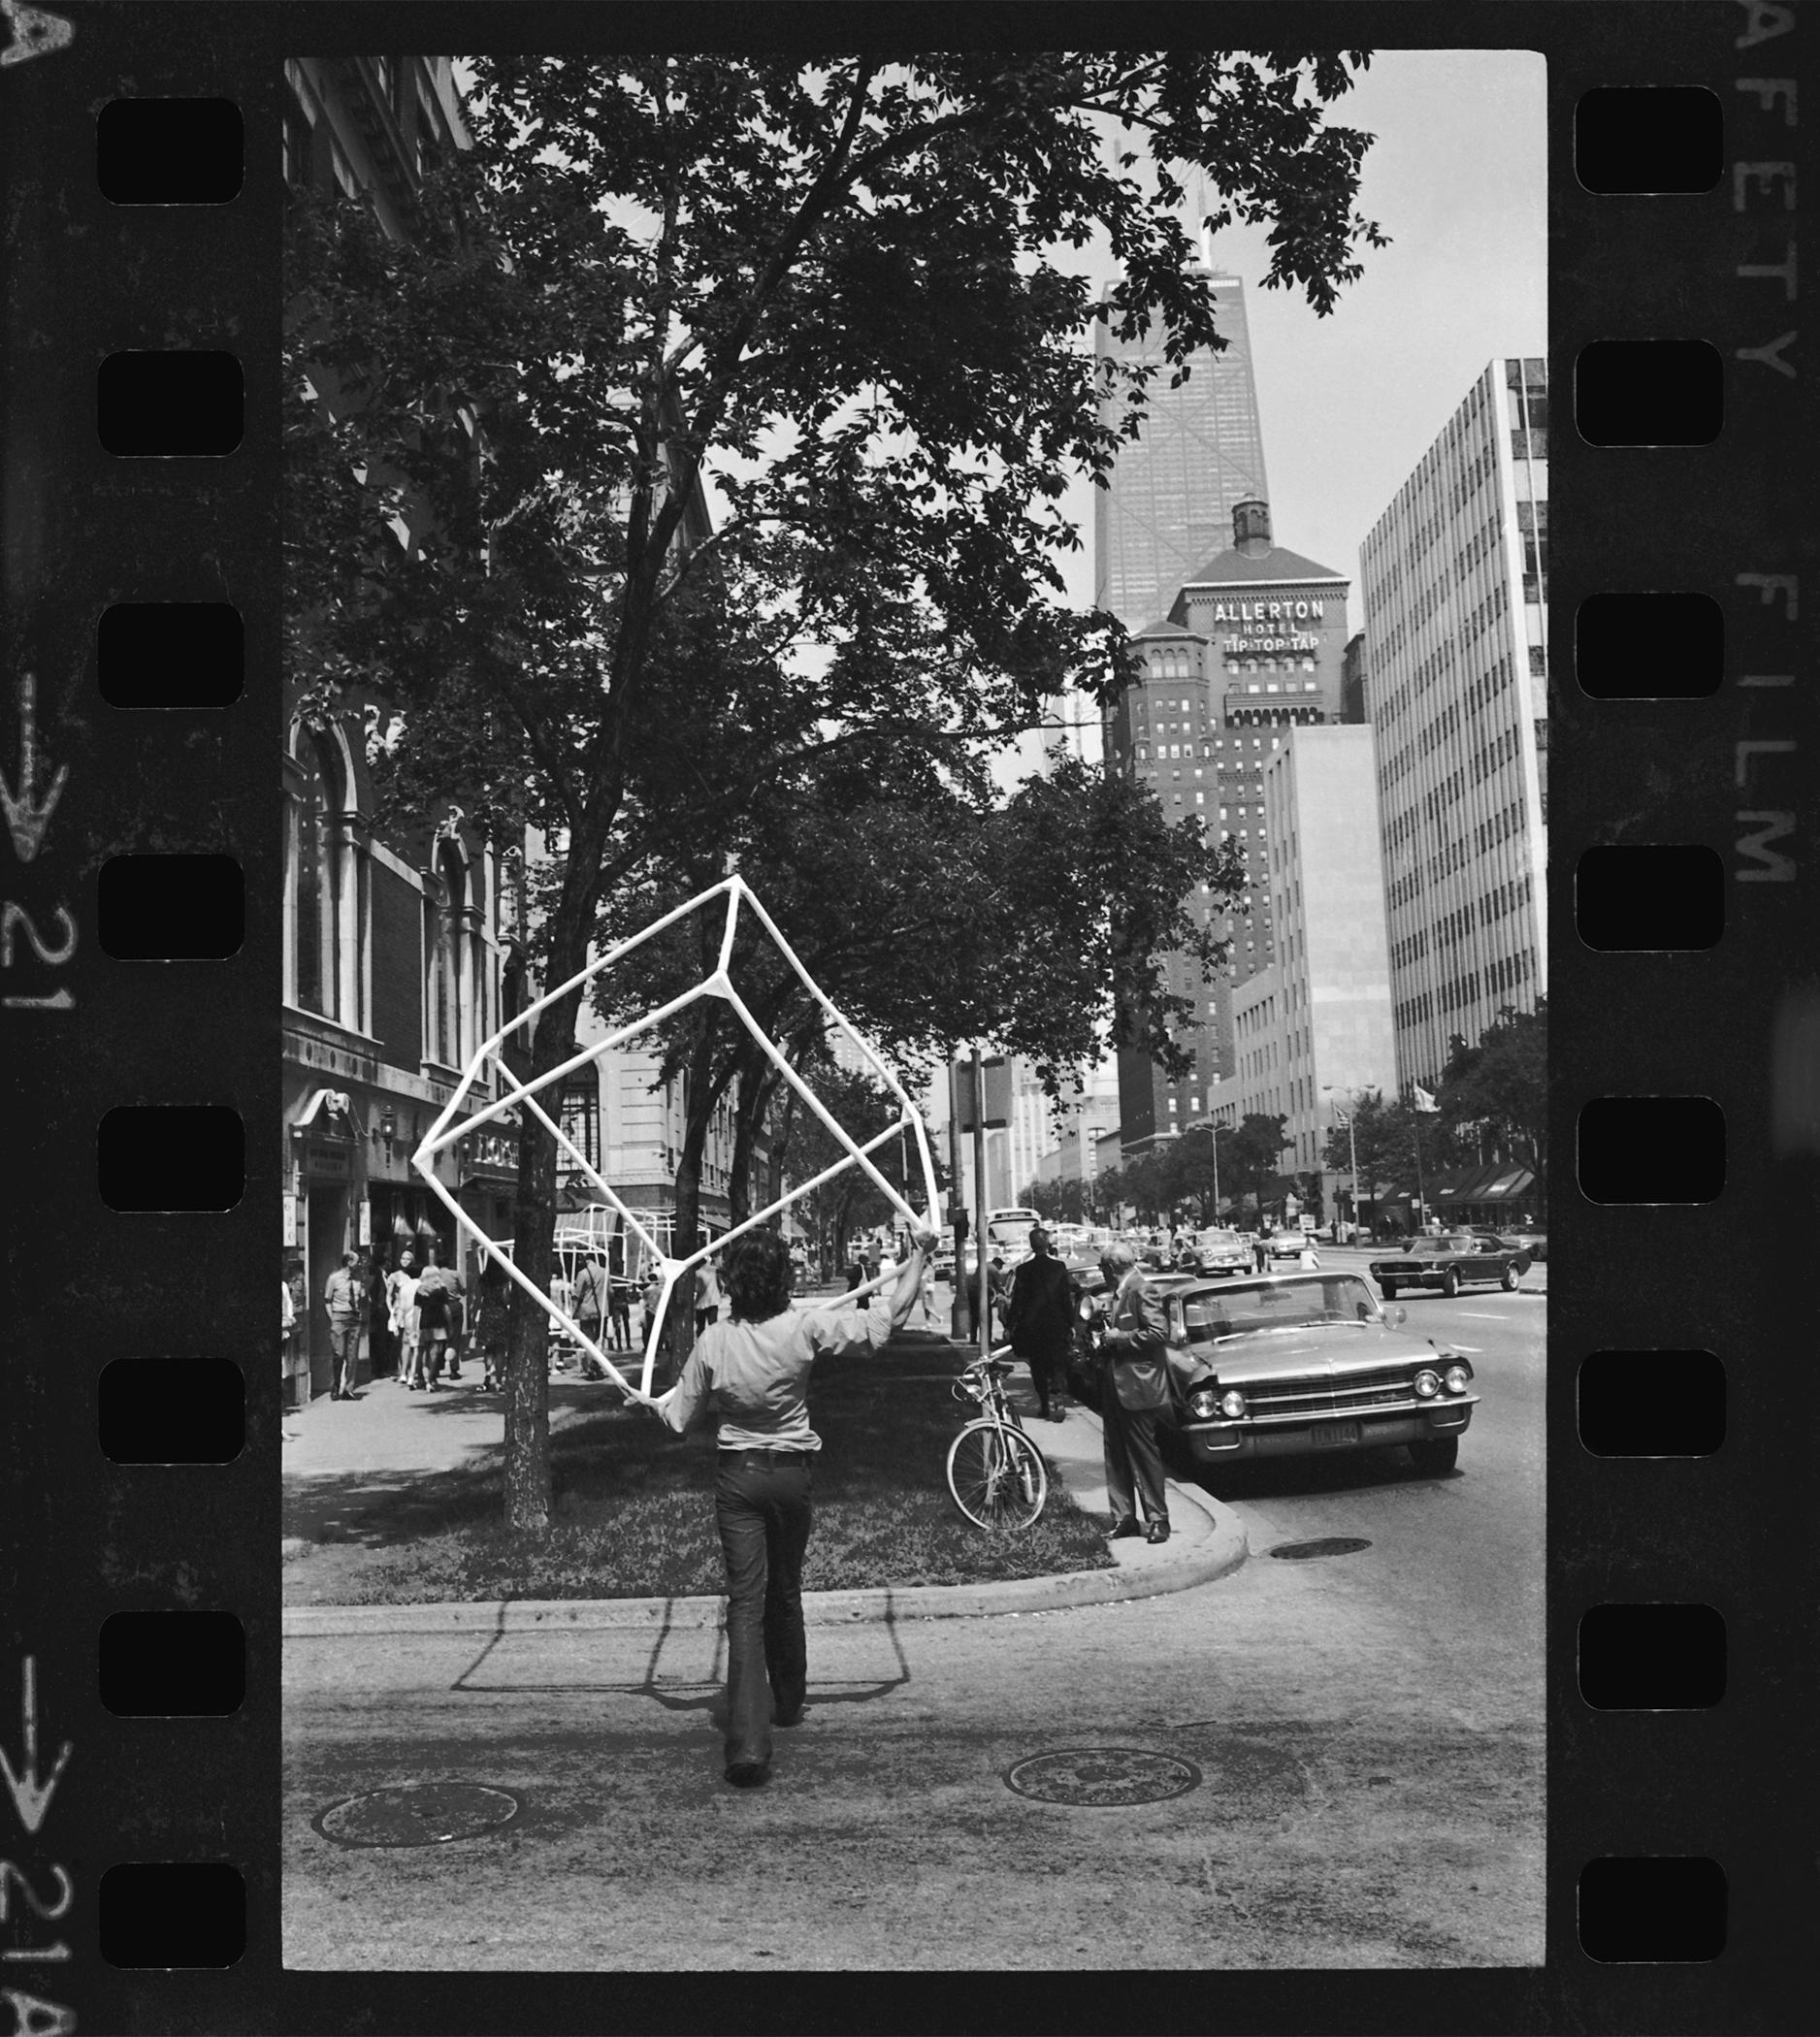 A black-and-white film frame shows a woman carrying an open cube sculpture while crossing the street, heading North on Michigan Avenue, Chicago, with the Allerton and John Hancock buildings in the background.